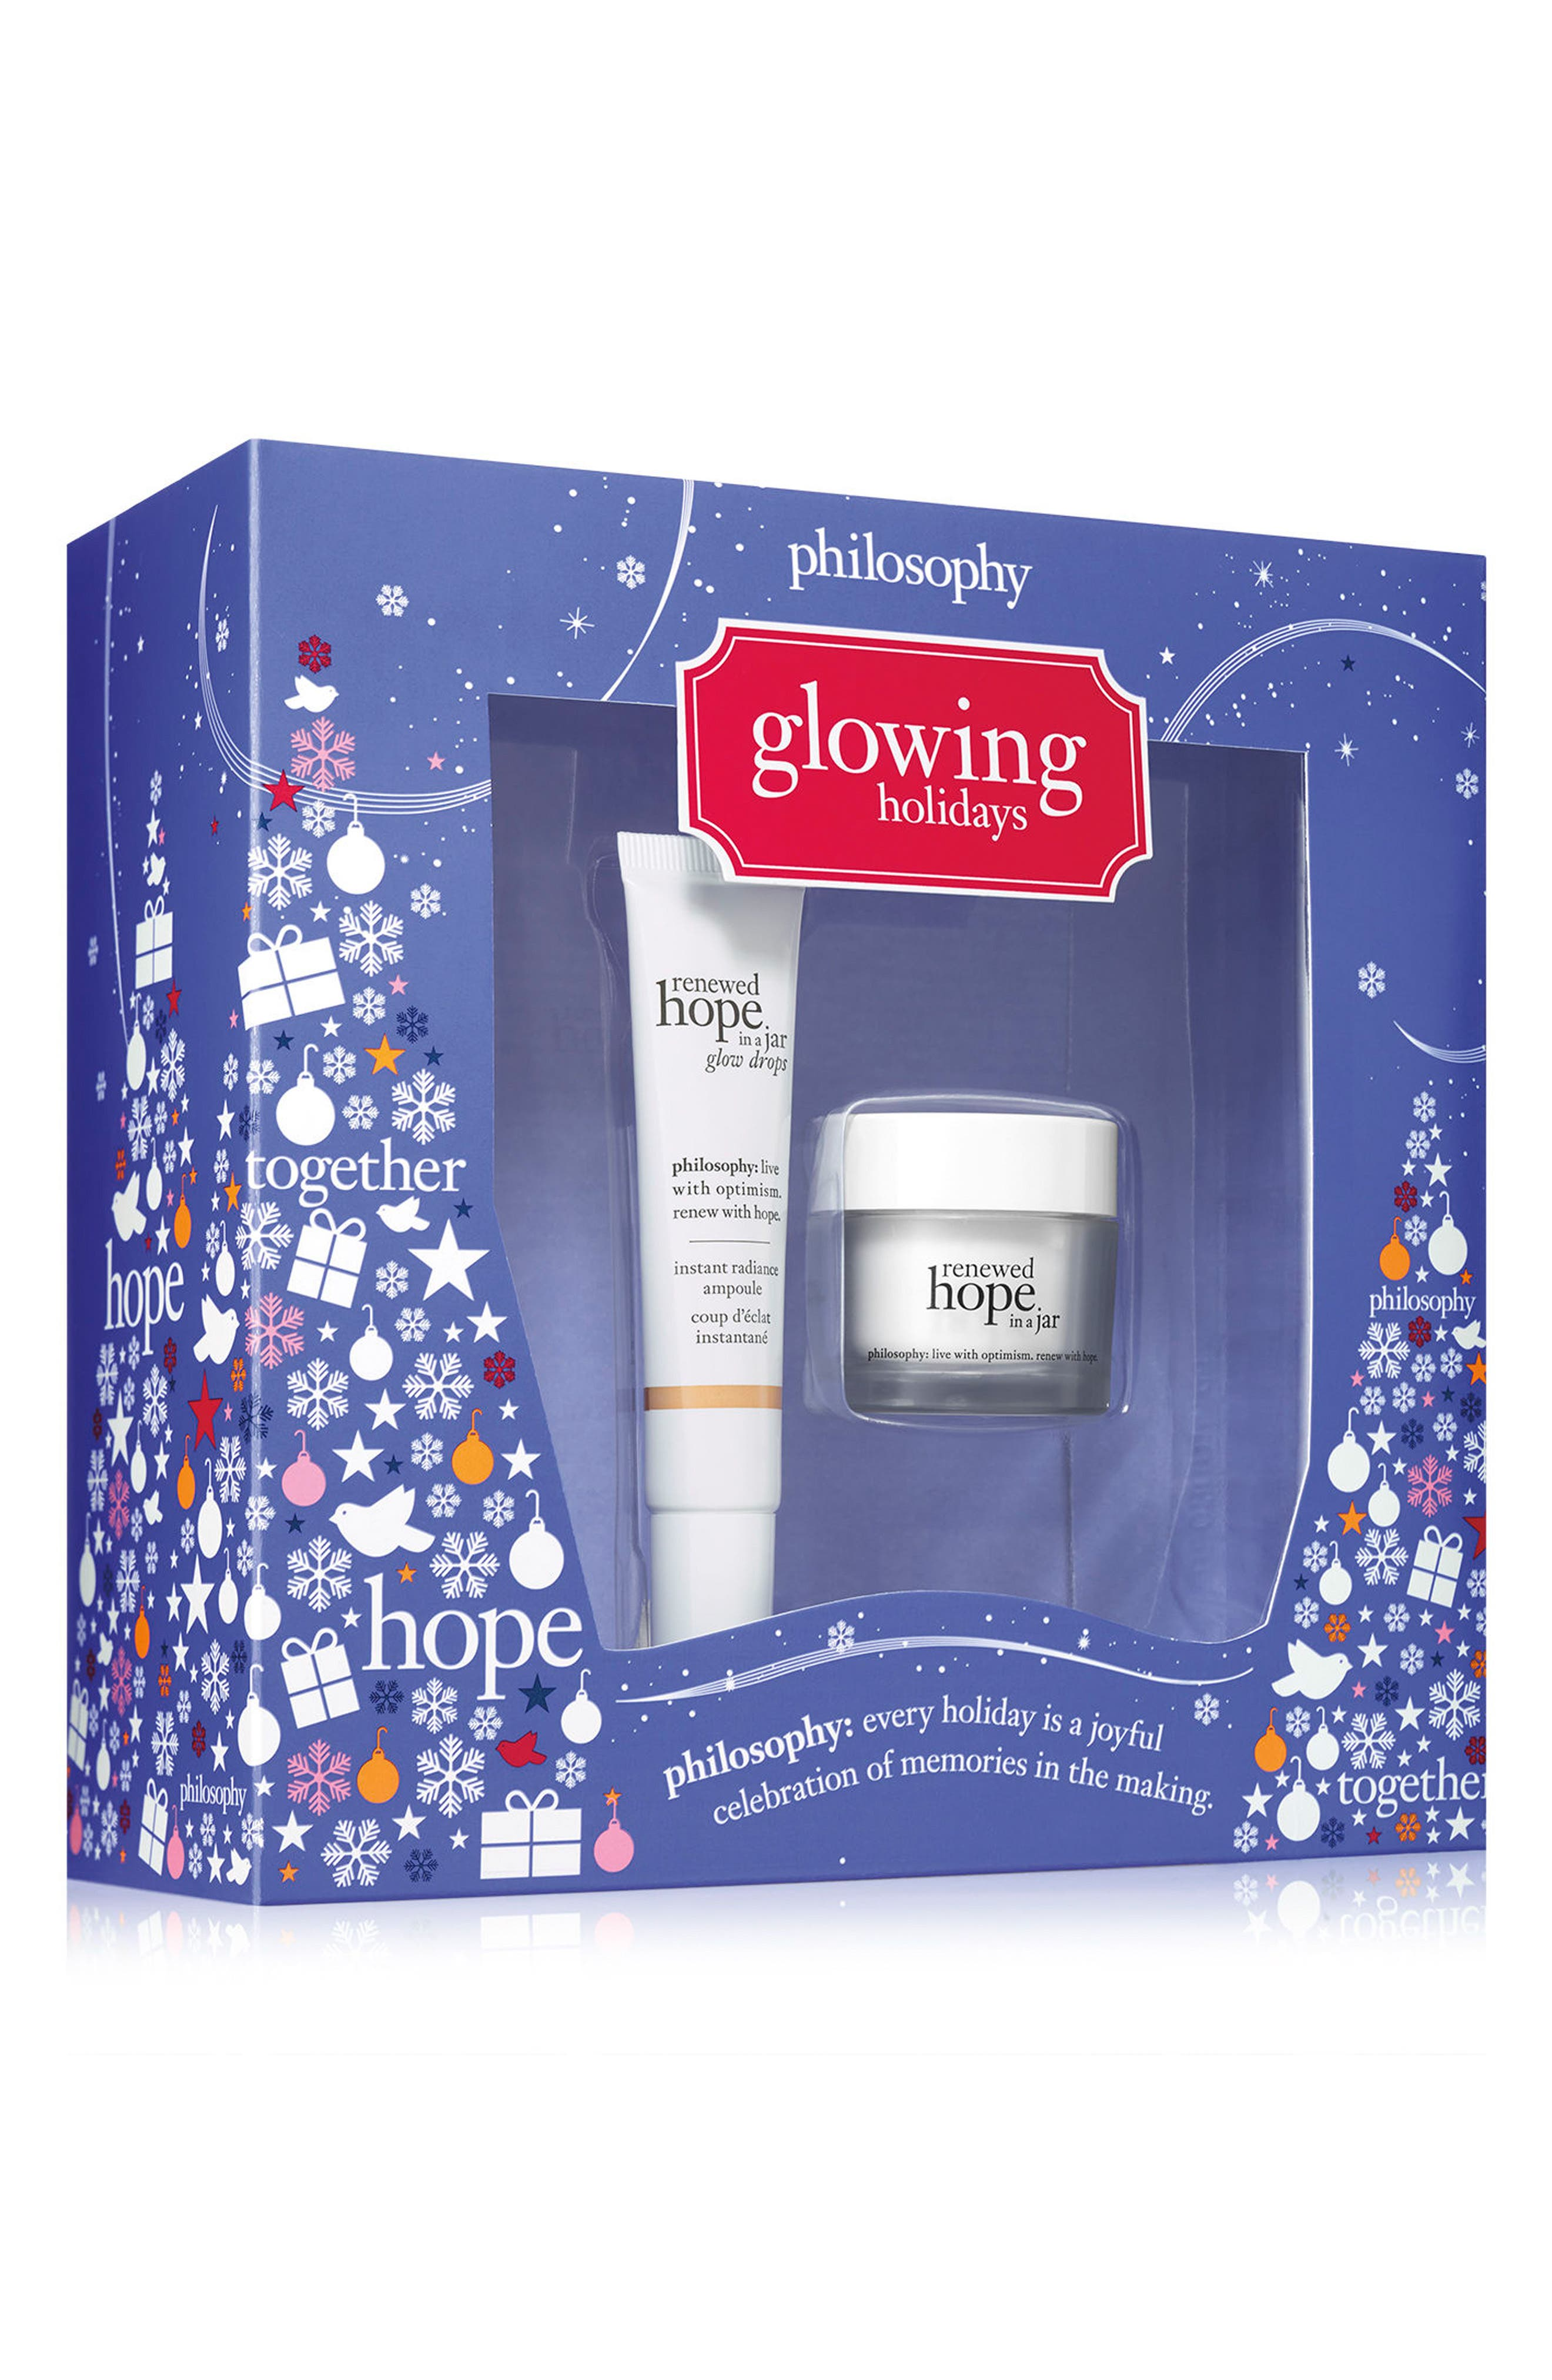 philosophy glowing gift set (Limited Edition)